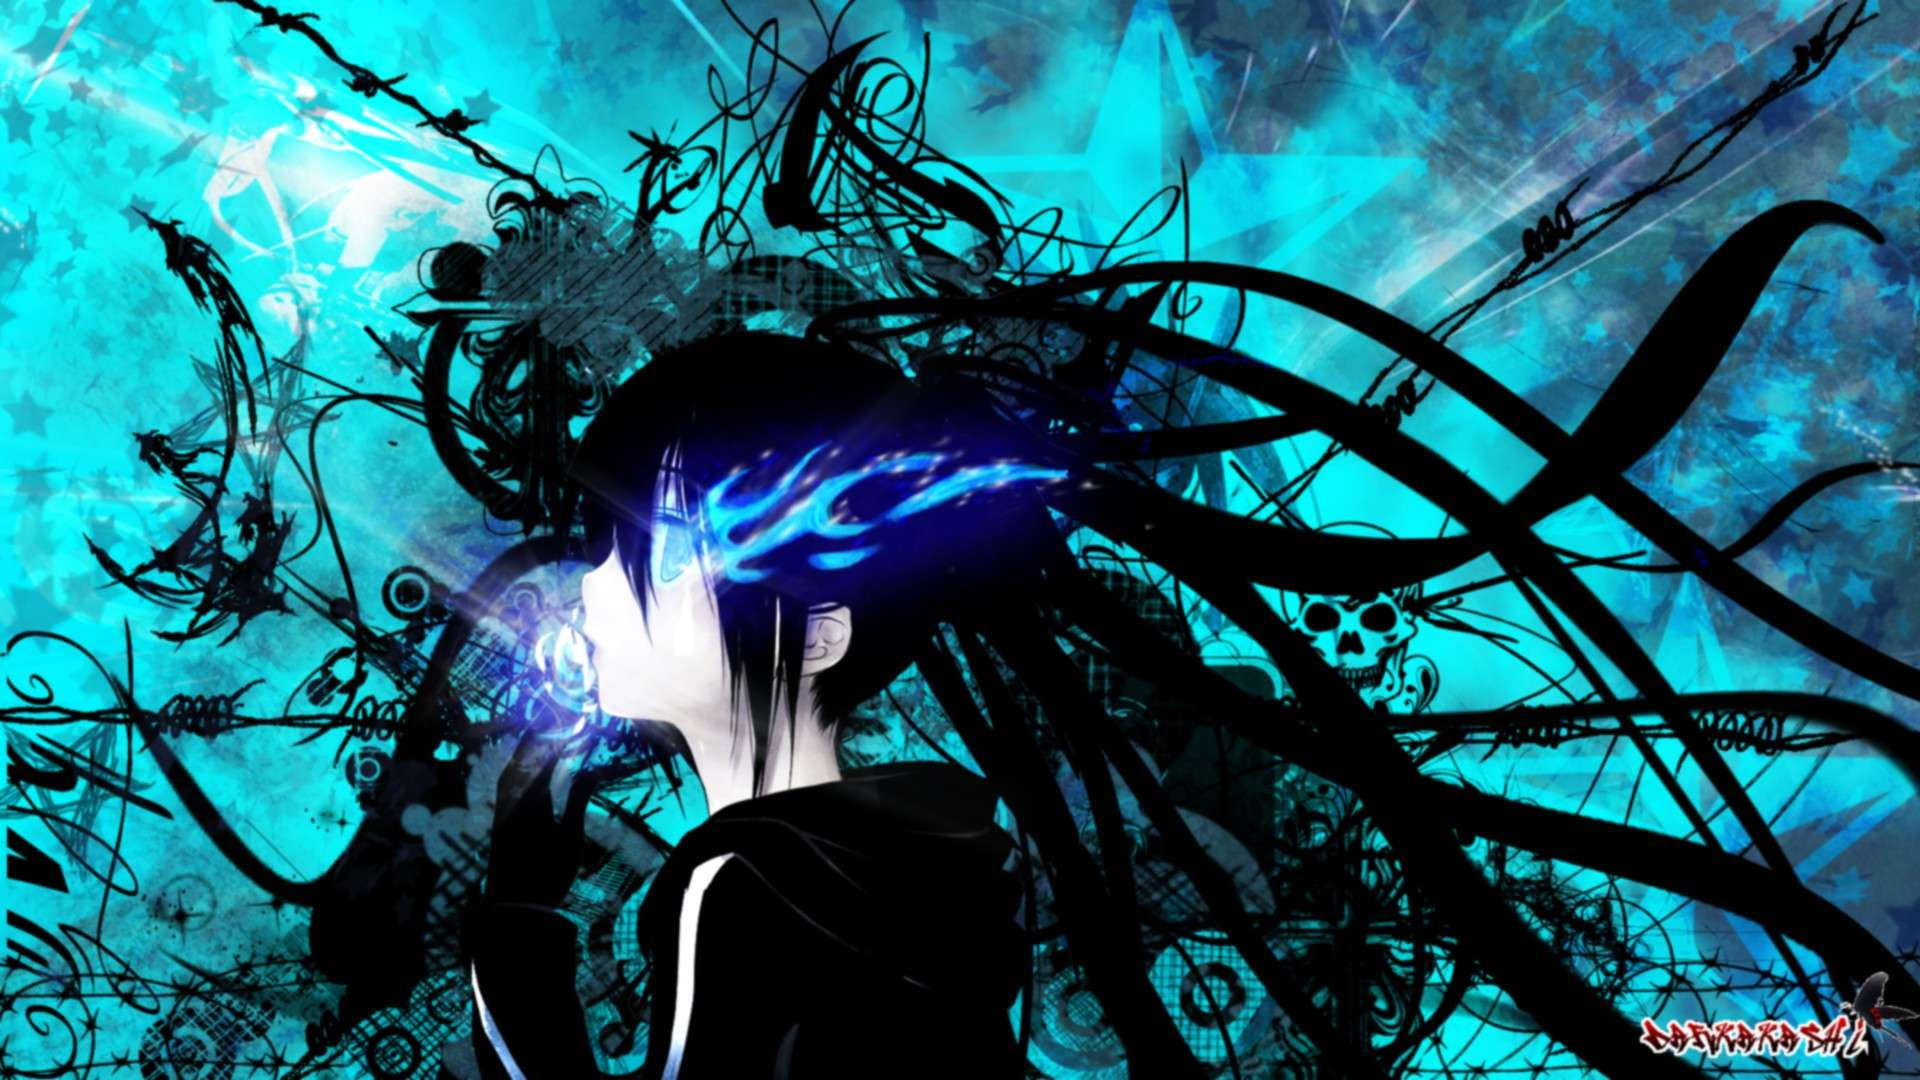 Black rock shooter hd